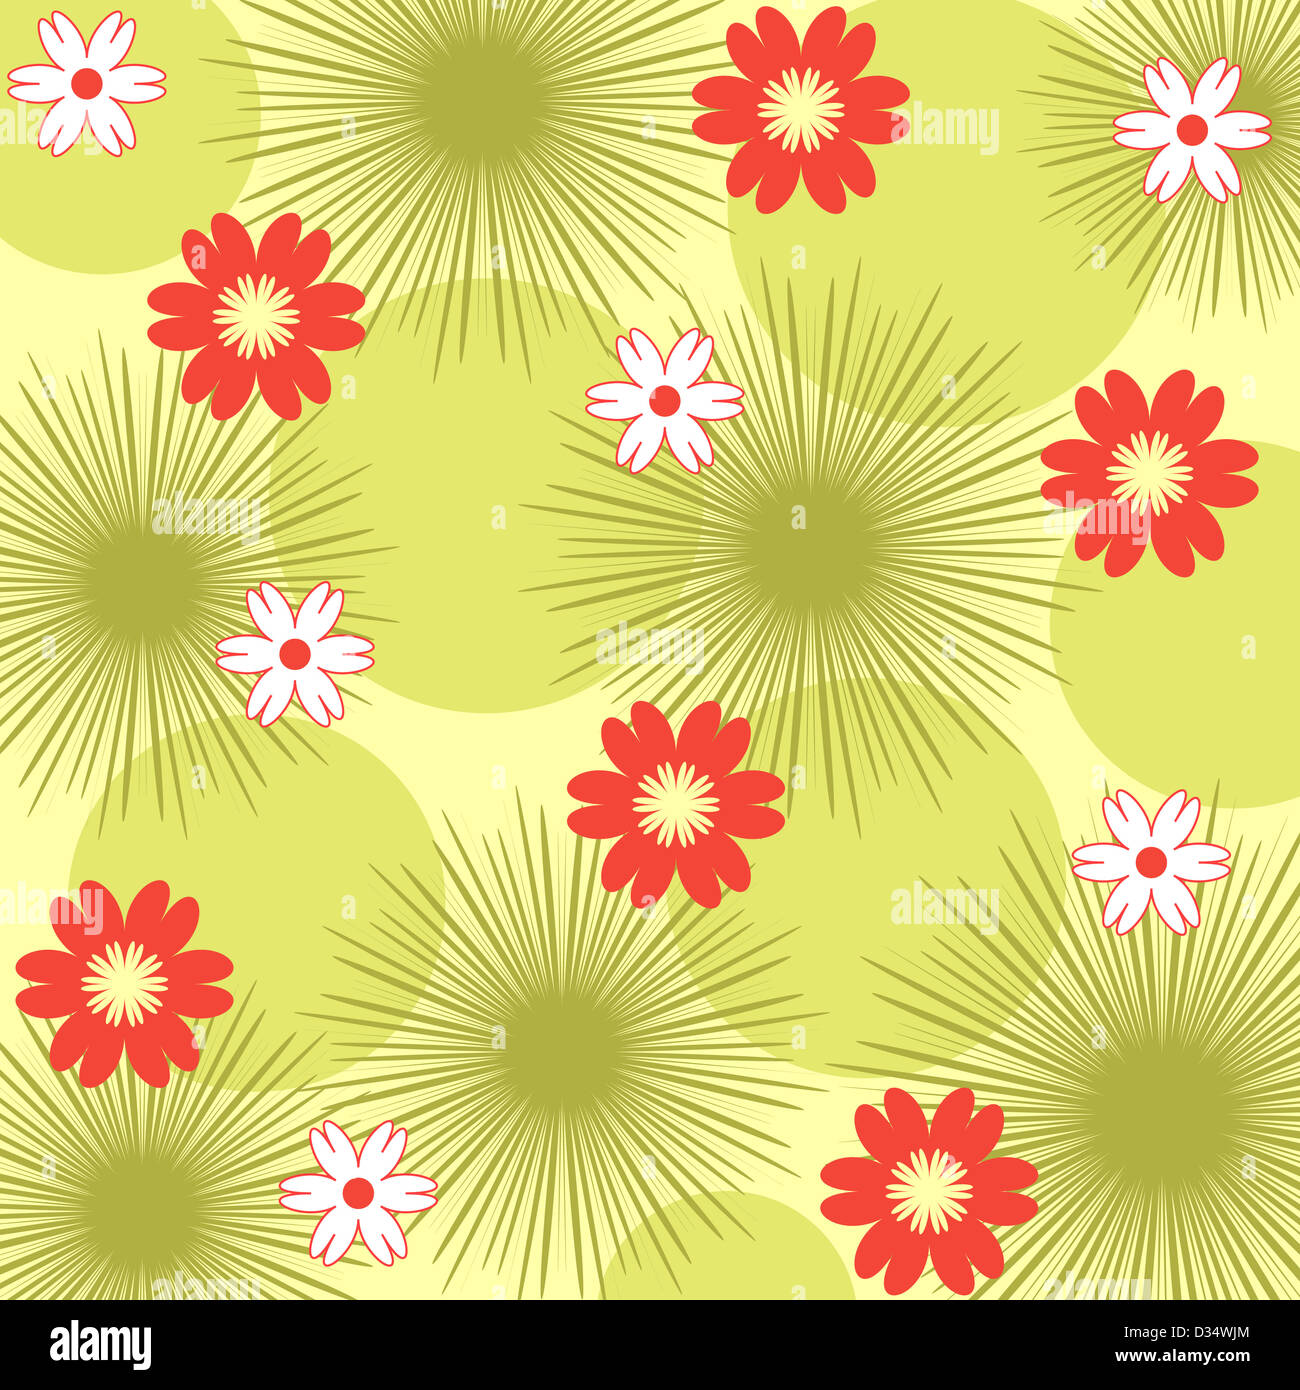 Orange and white floral pattern on green Stock Photo